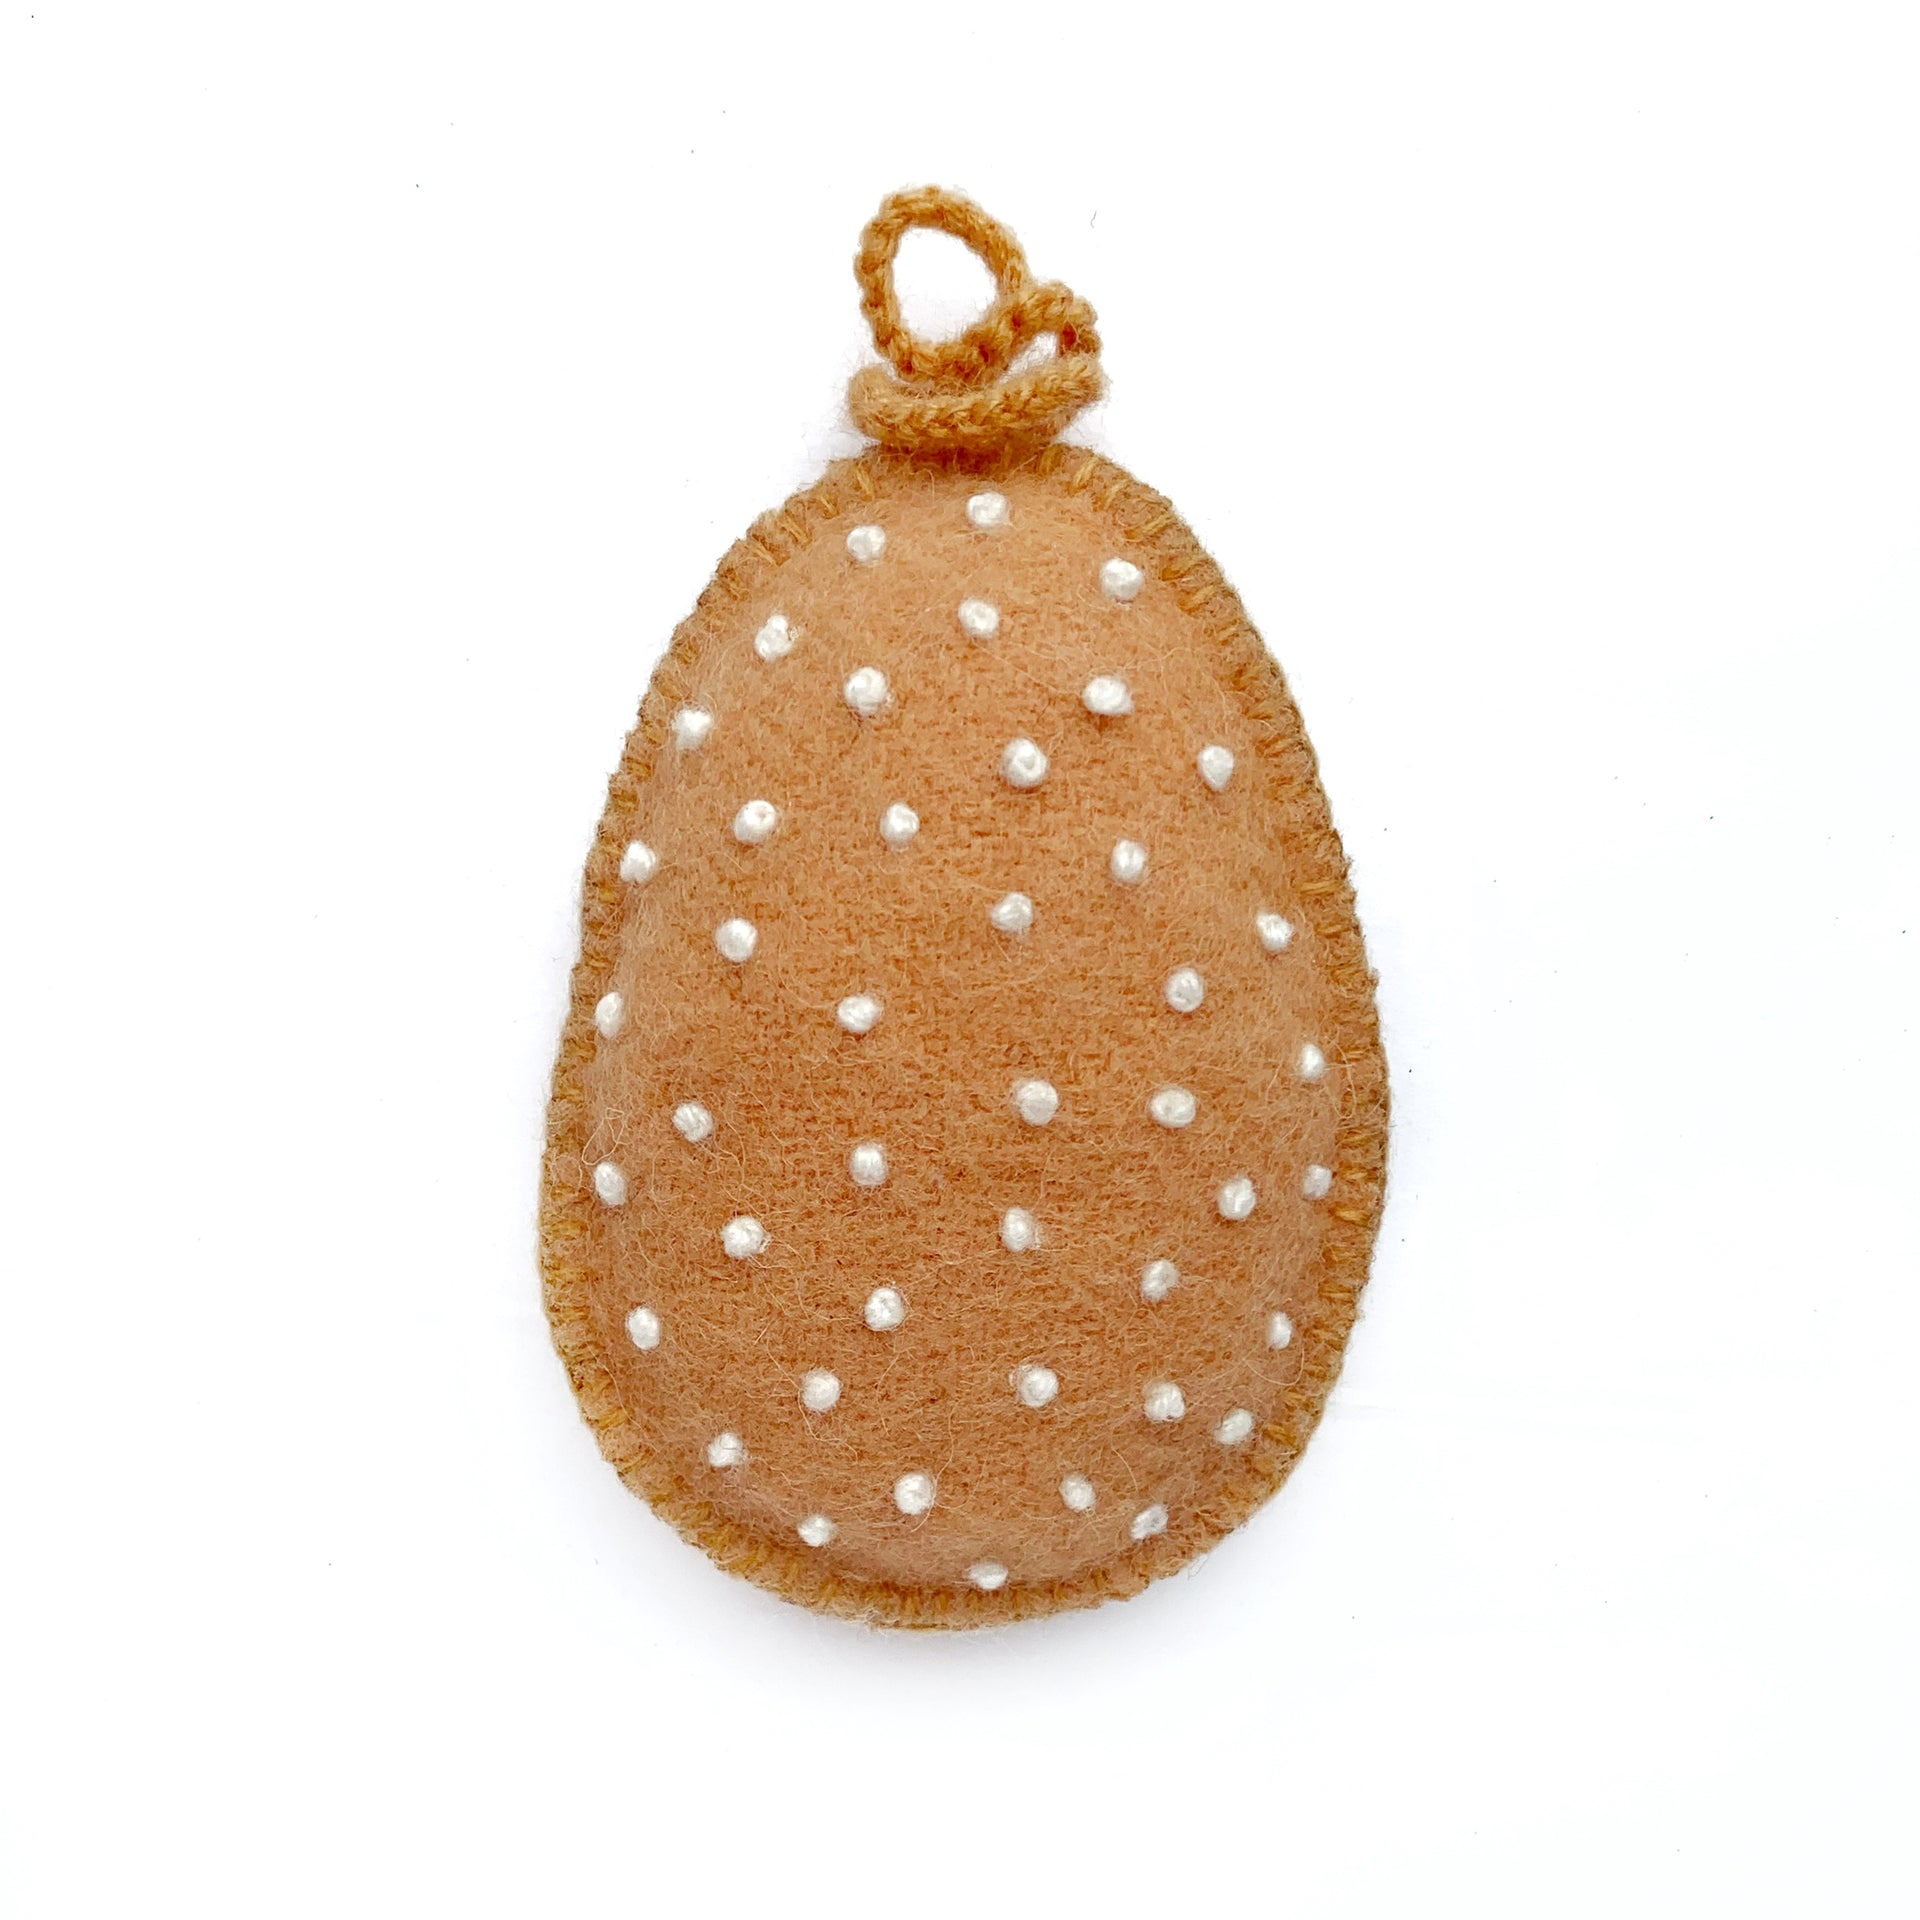 Easter Egg Ornament with Embroidered White Dots